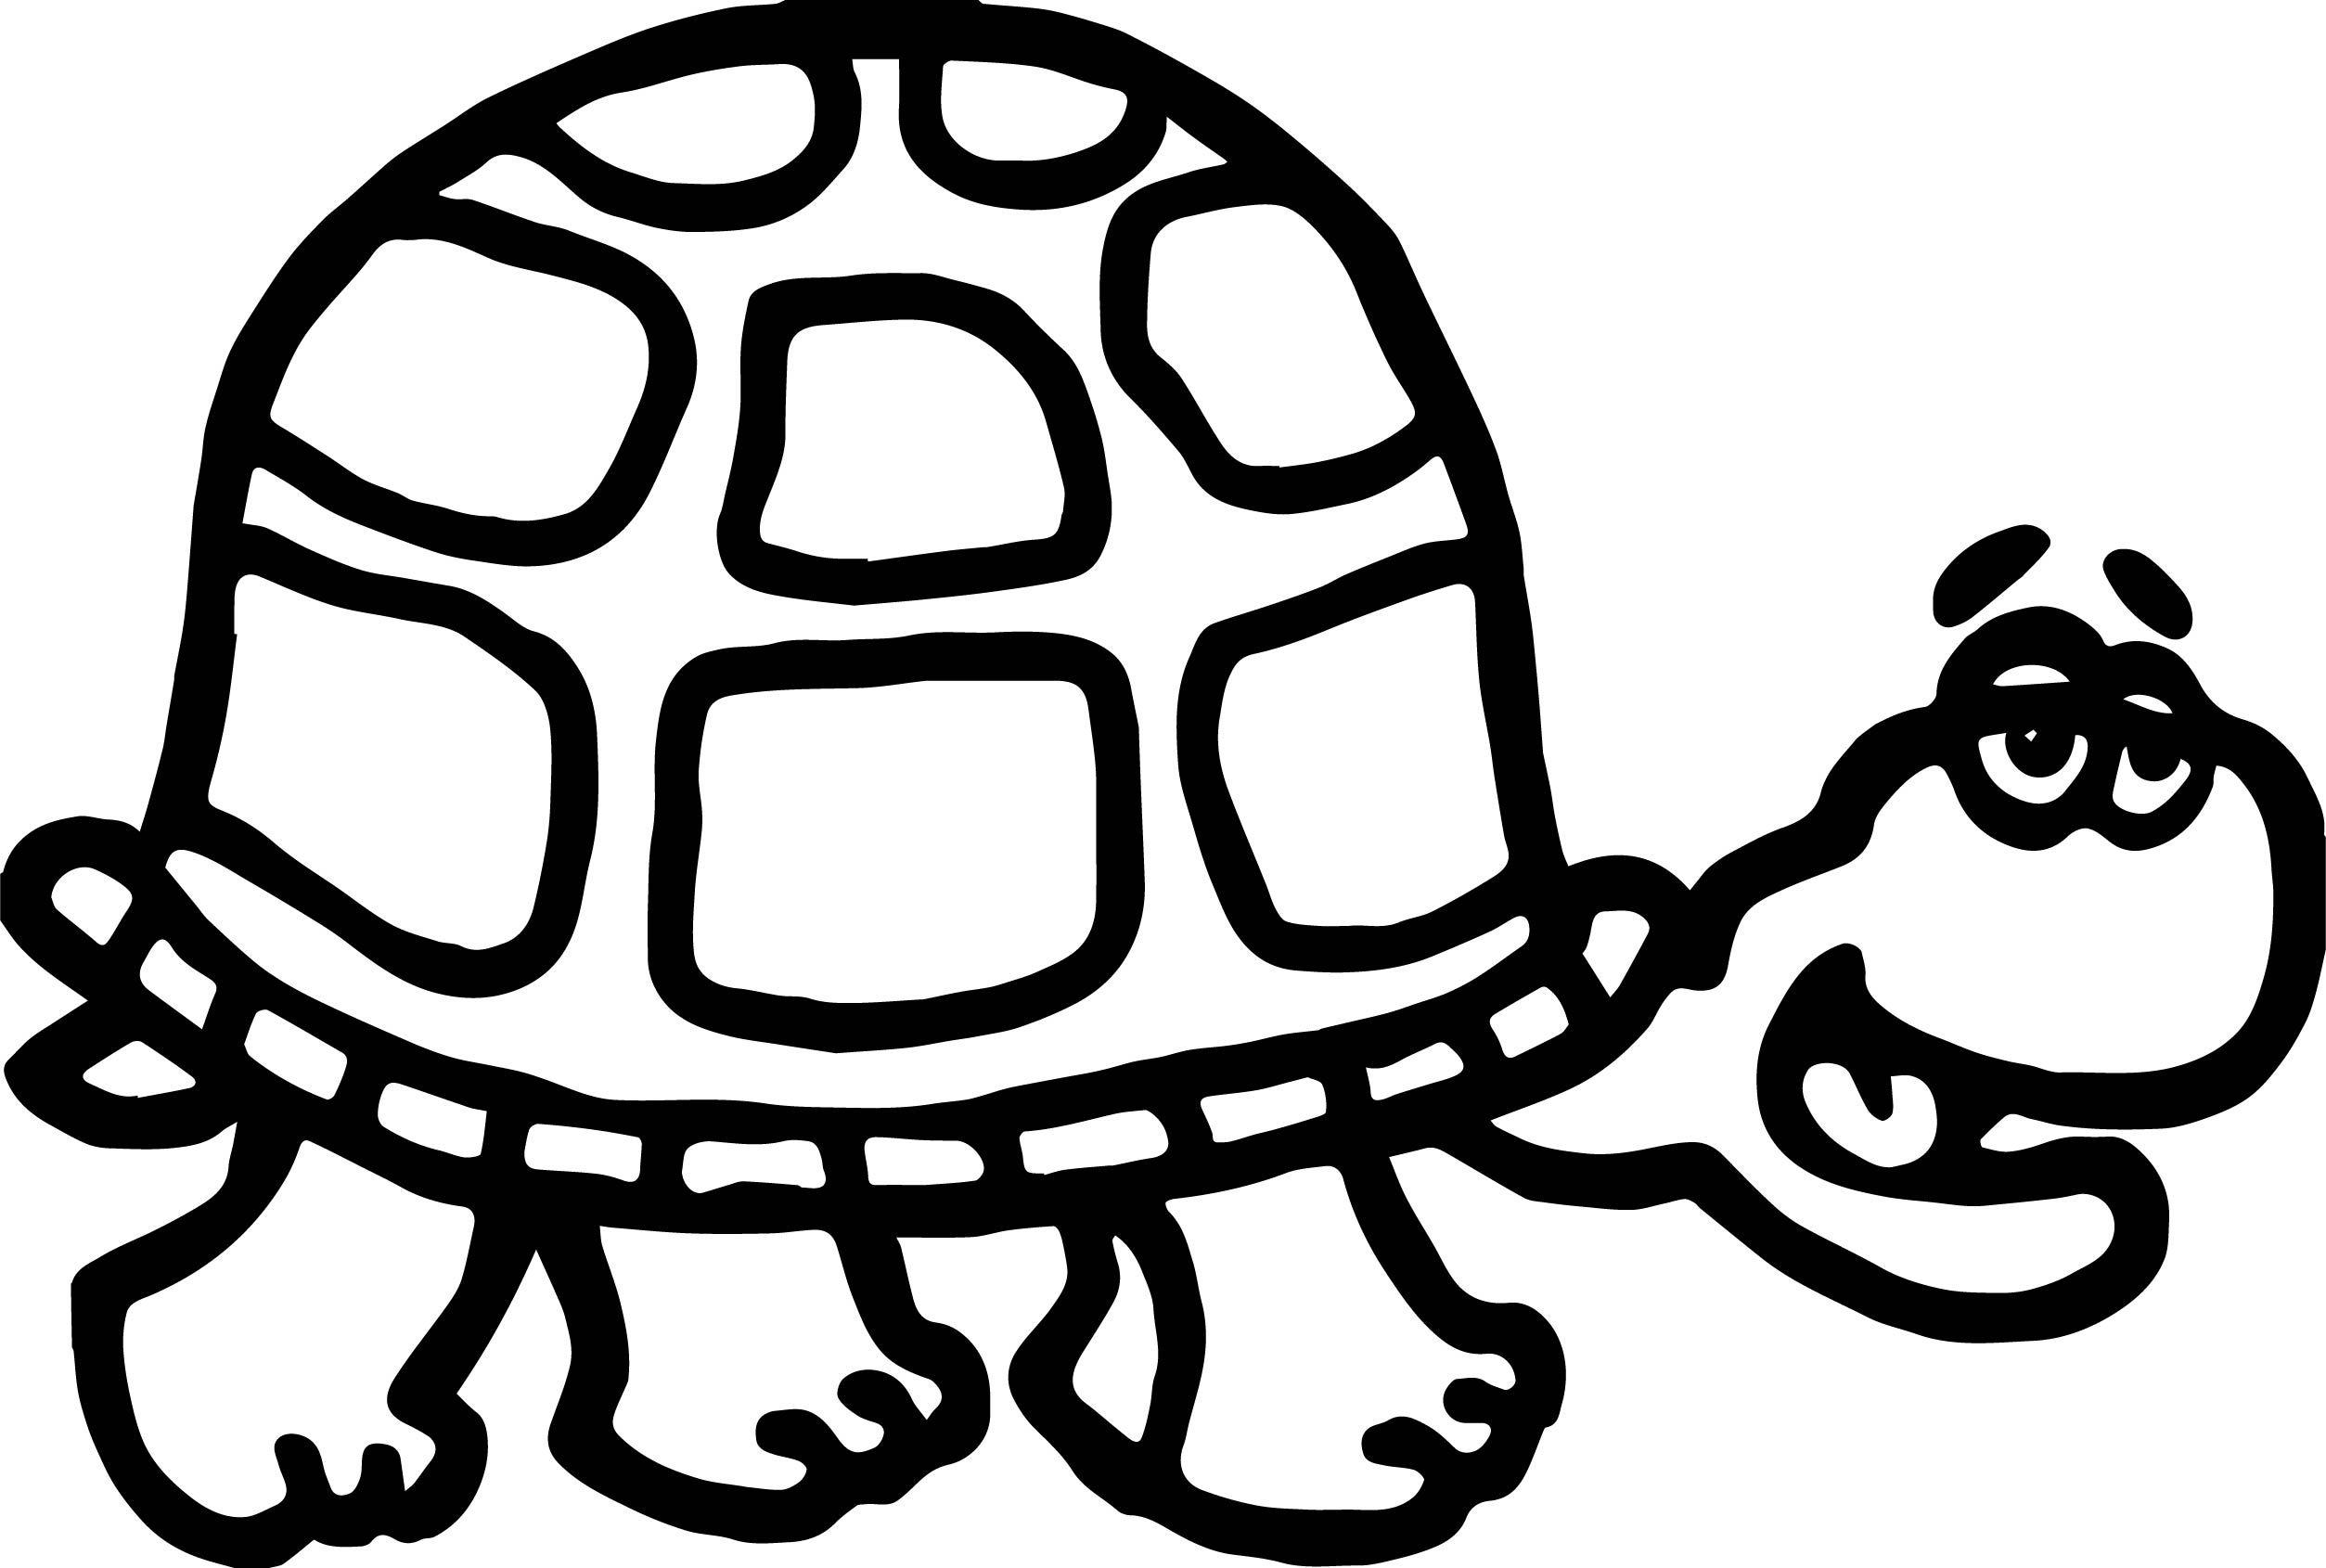 Talking Old Tortoise Turtle Coloring Page Turtle Coloring Pages Animal Coloring Pages Horse Coloring Pages